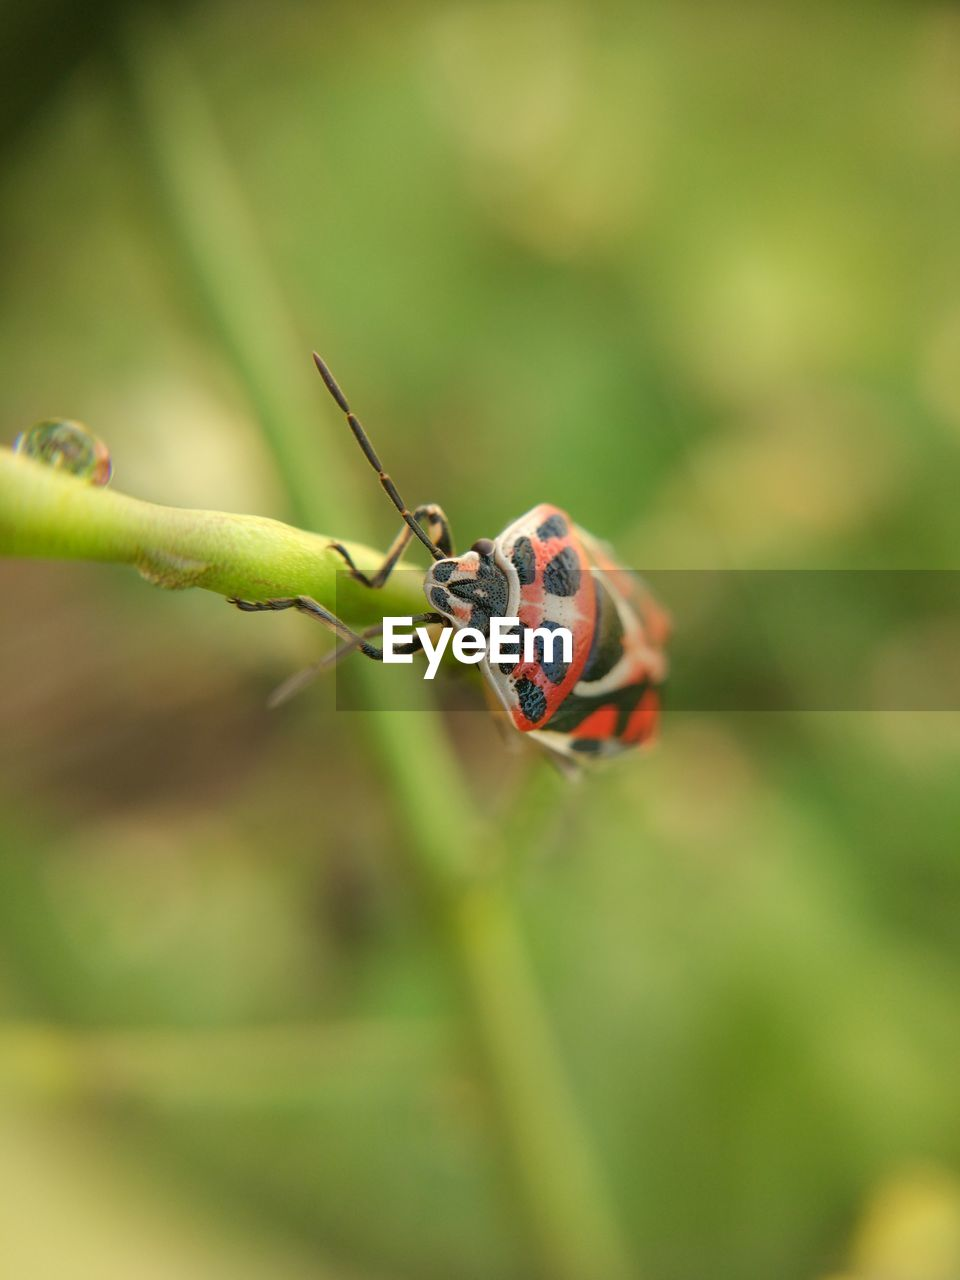 invertebrate, insect, animals in the wild, animal wildlife, animal themes, animal, close-up, one animal, selective focus, plant, no people, day, nature, green color, focus on foreground, beetle, beauty in nature, zoology, outdoors